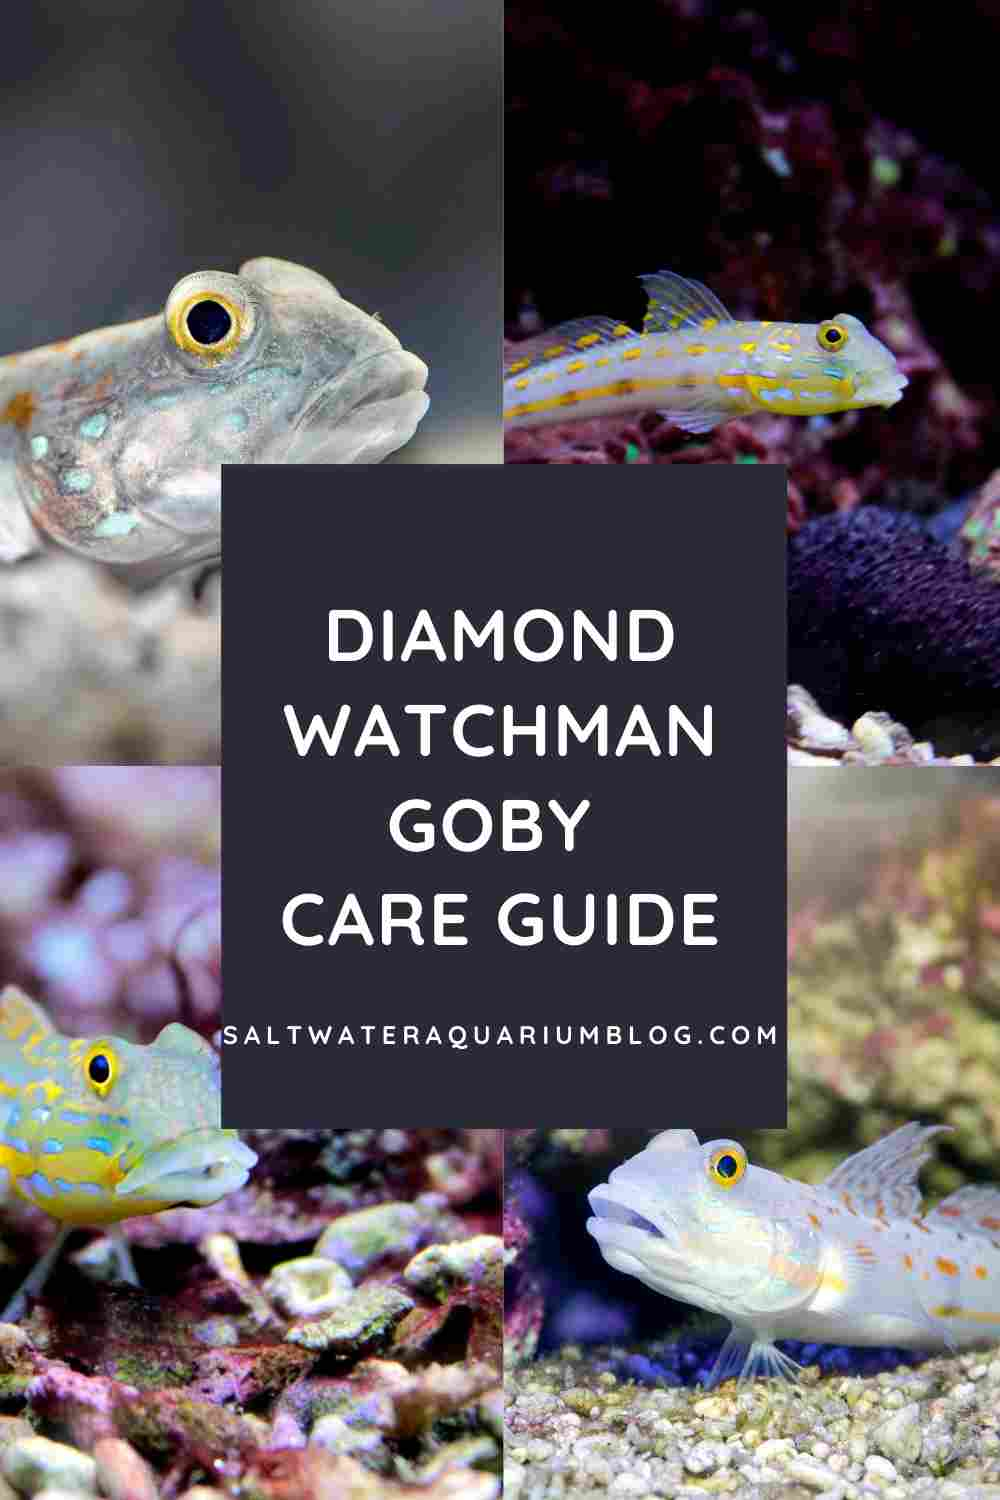 Diamond watchman goby care guide